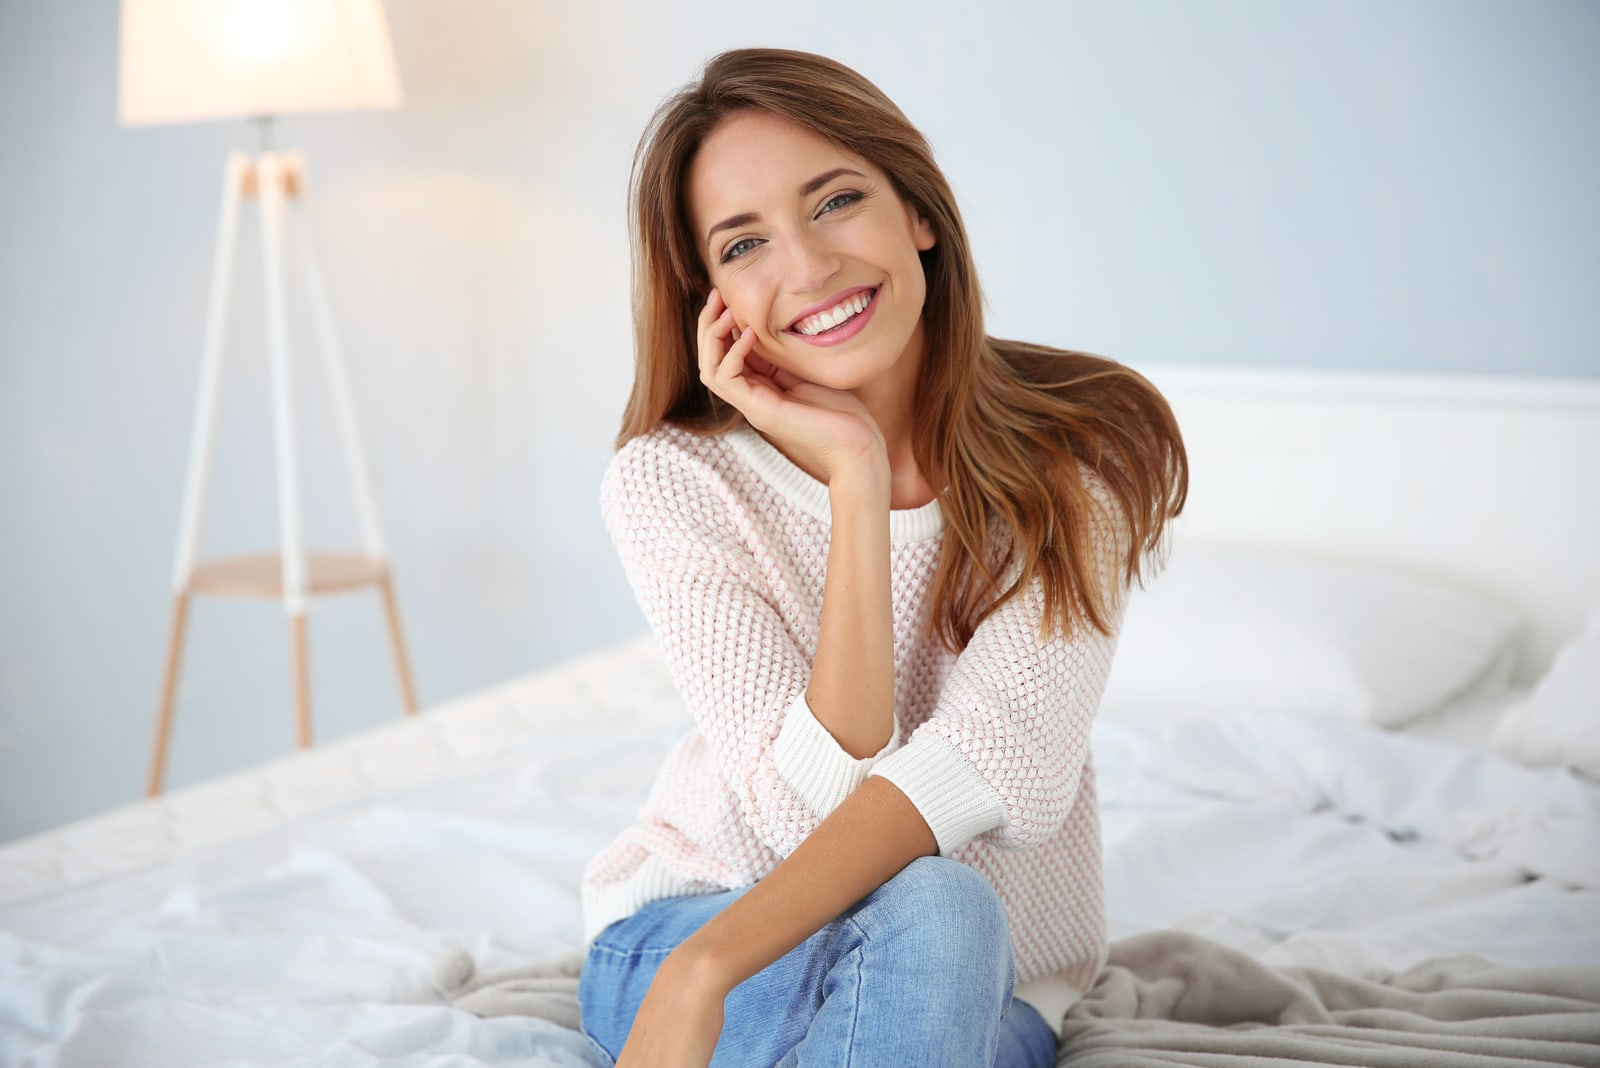 smiling woman posing on the bed